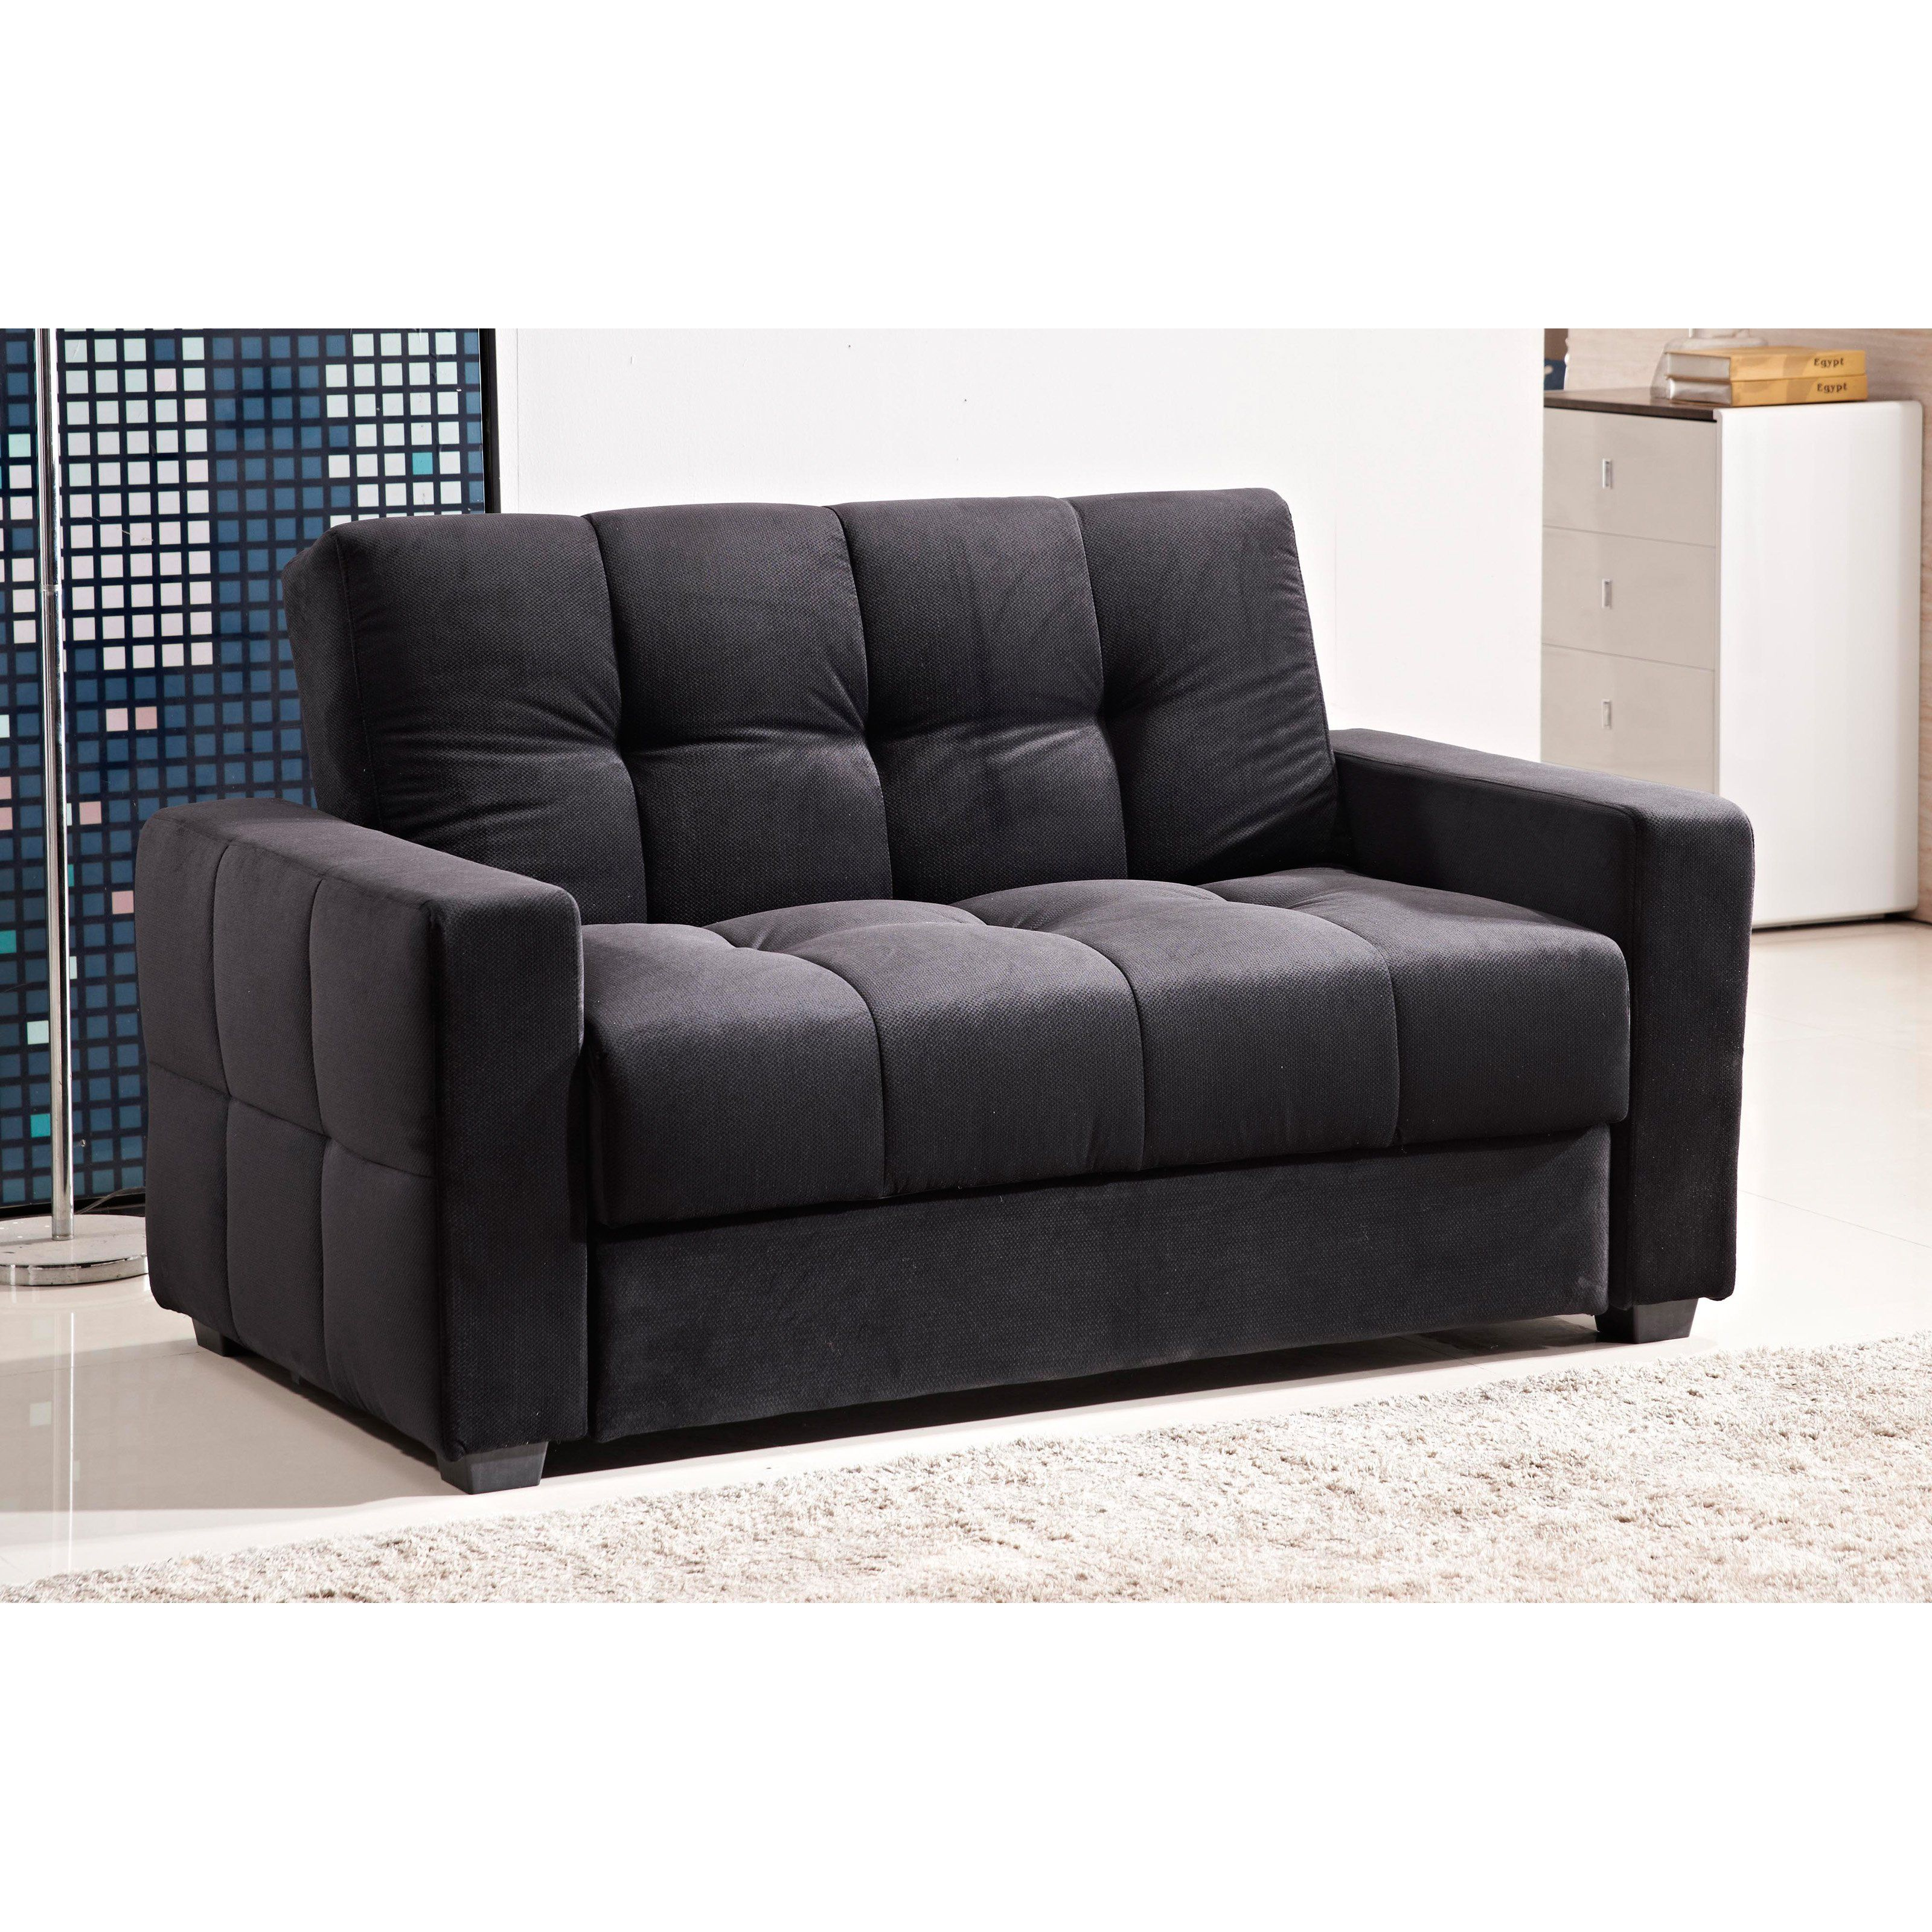 additional design out room in best designs ottoman effective featured pictures visited most with dashing velvet for sleeper pull love living ideas creamy sleep furniture seat combined